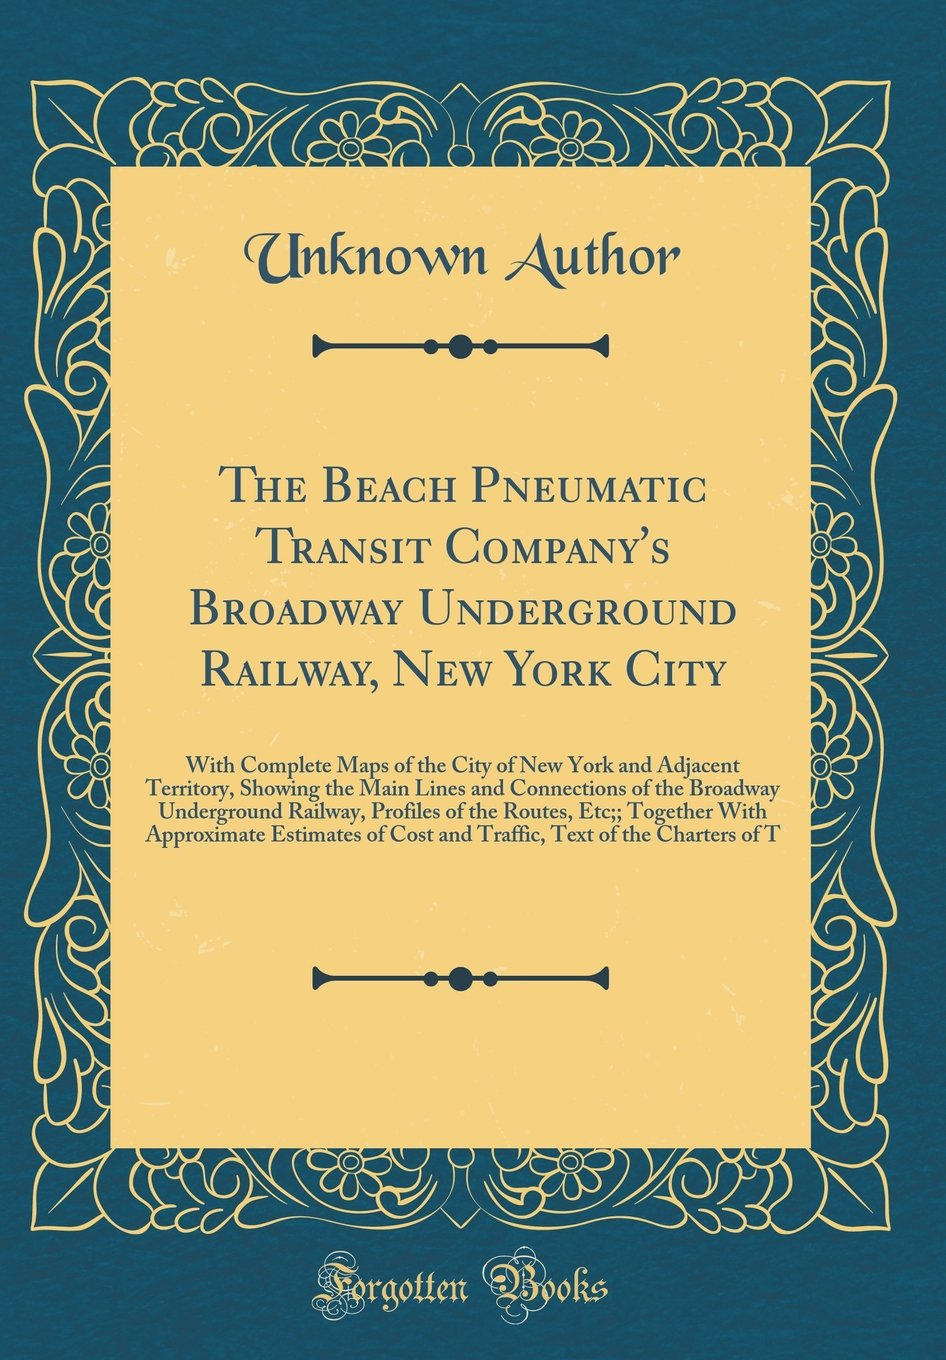 The Beach Pneumatic Transit Company's Broadway Underground ... on map of the american revolution, map of solomon northup, map of louisiana purchase, map of boston tea party, map of schools, map of slavery, map of transcontinental railroad, map of science, map of thanksgiving, map of acadians, map of colonial boston, map of london train stations, map of german immigrants, map of united states, map of mountain men, map of transportation, map of black hawk war, map of john brown's raid, map of japanese internment camps, map of cotton kingdom,